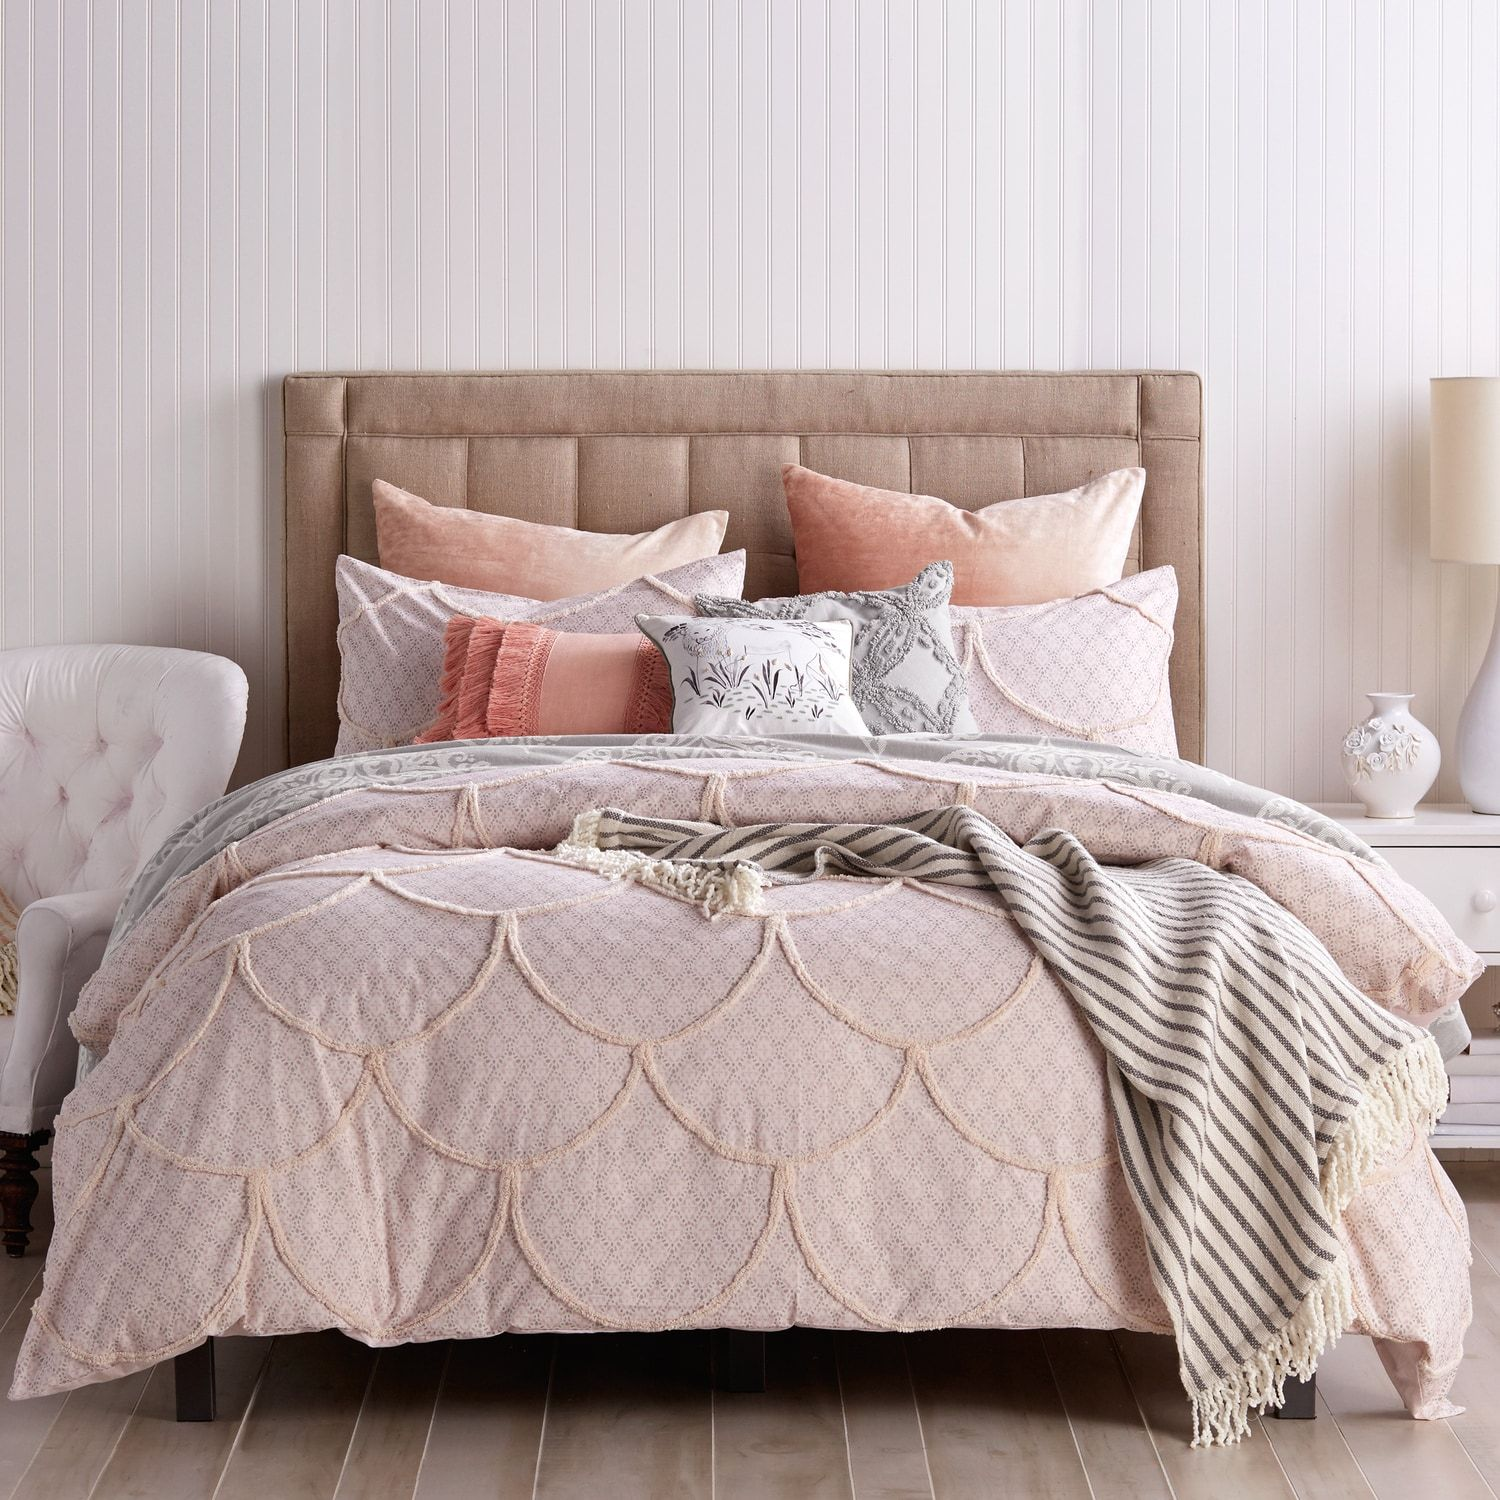 ttxfrxgfpvb duvet cover articles lauder aerin find with nn bedroom lonny in the scallop